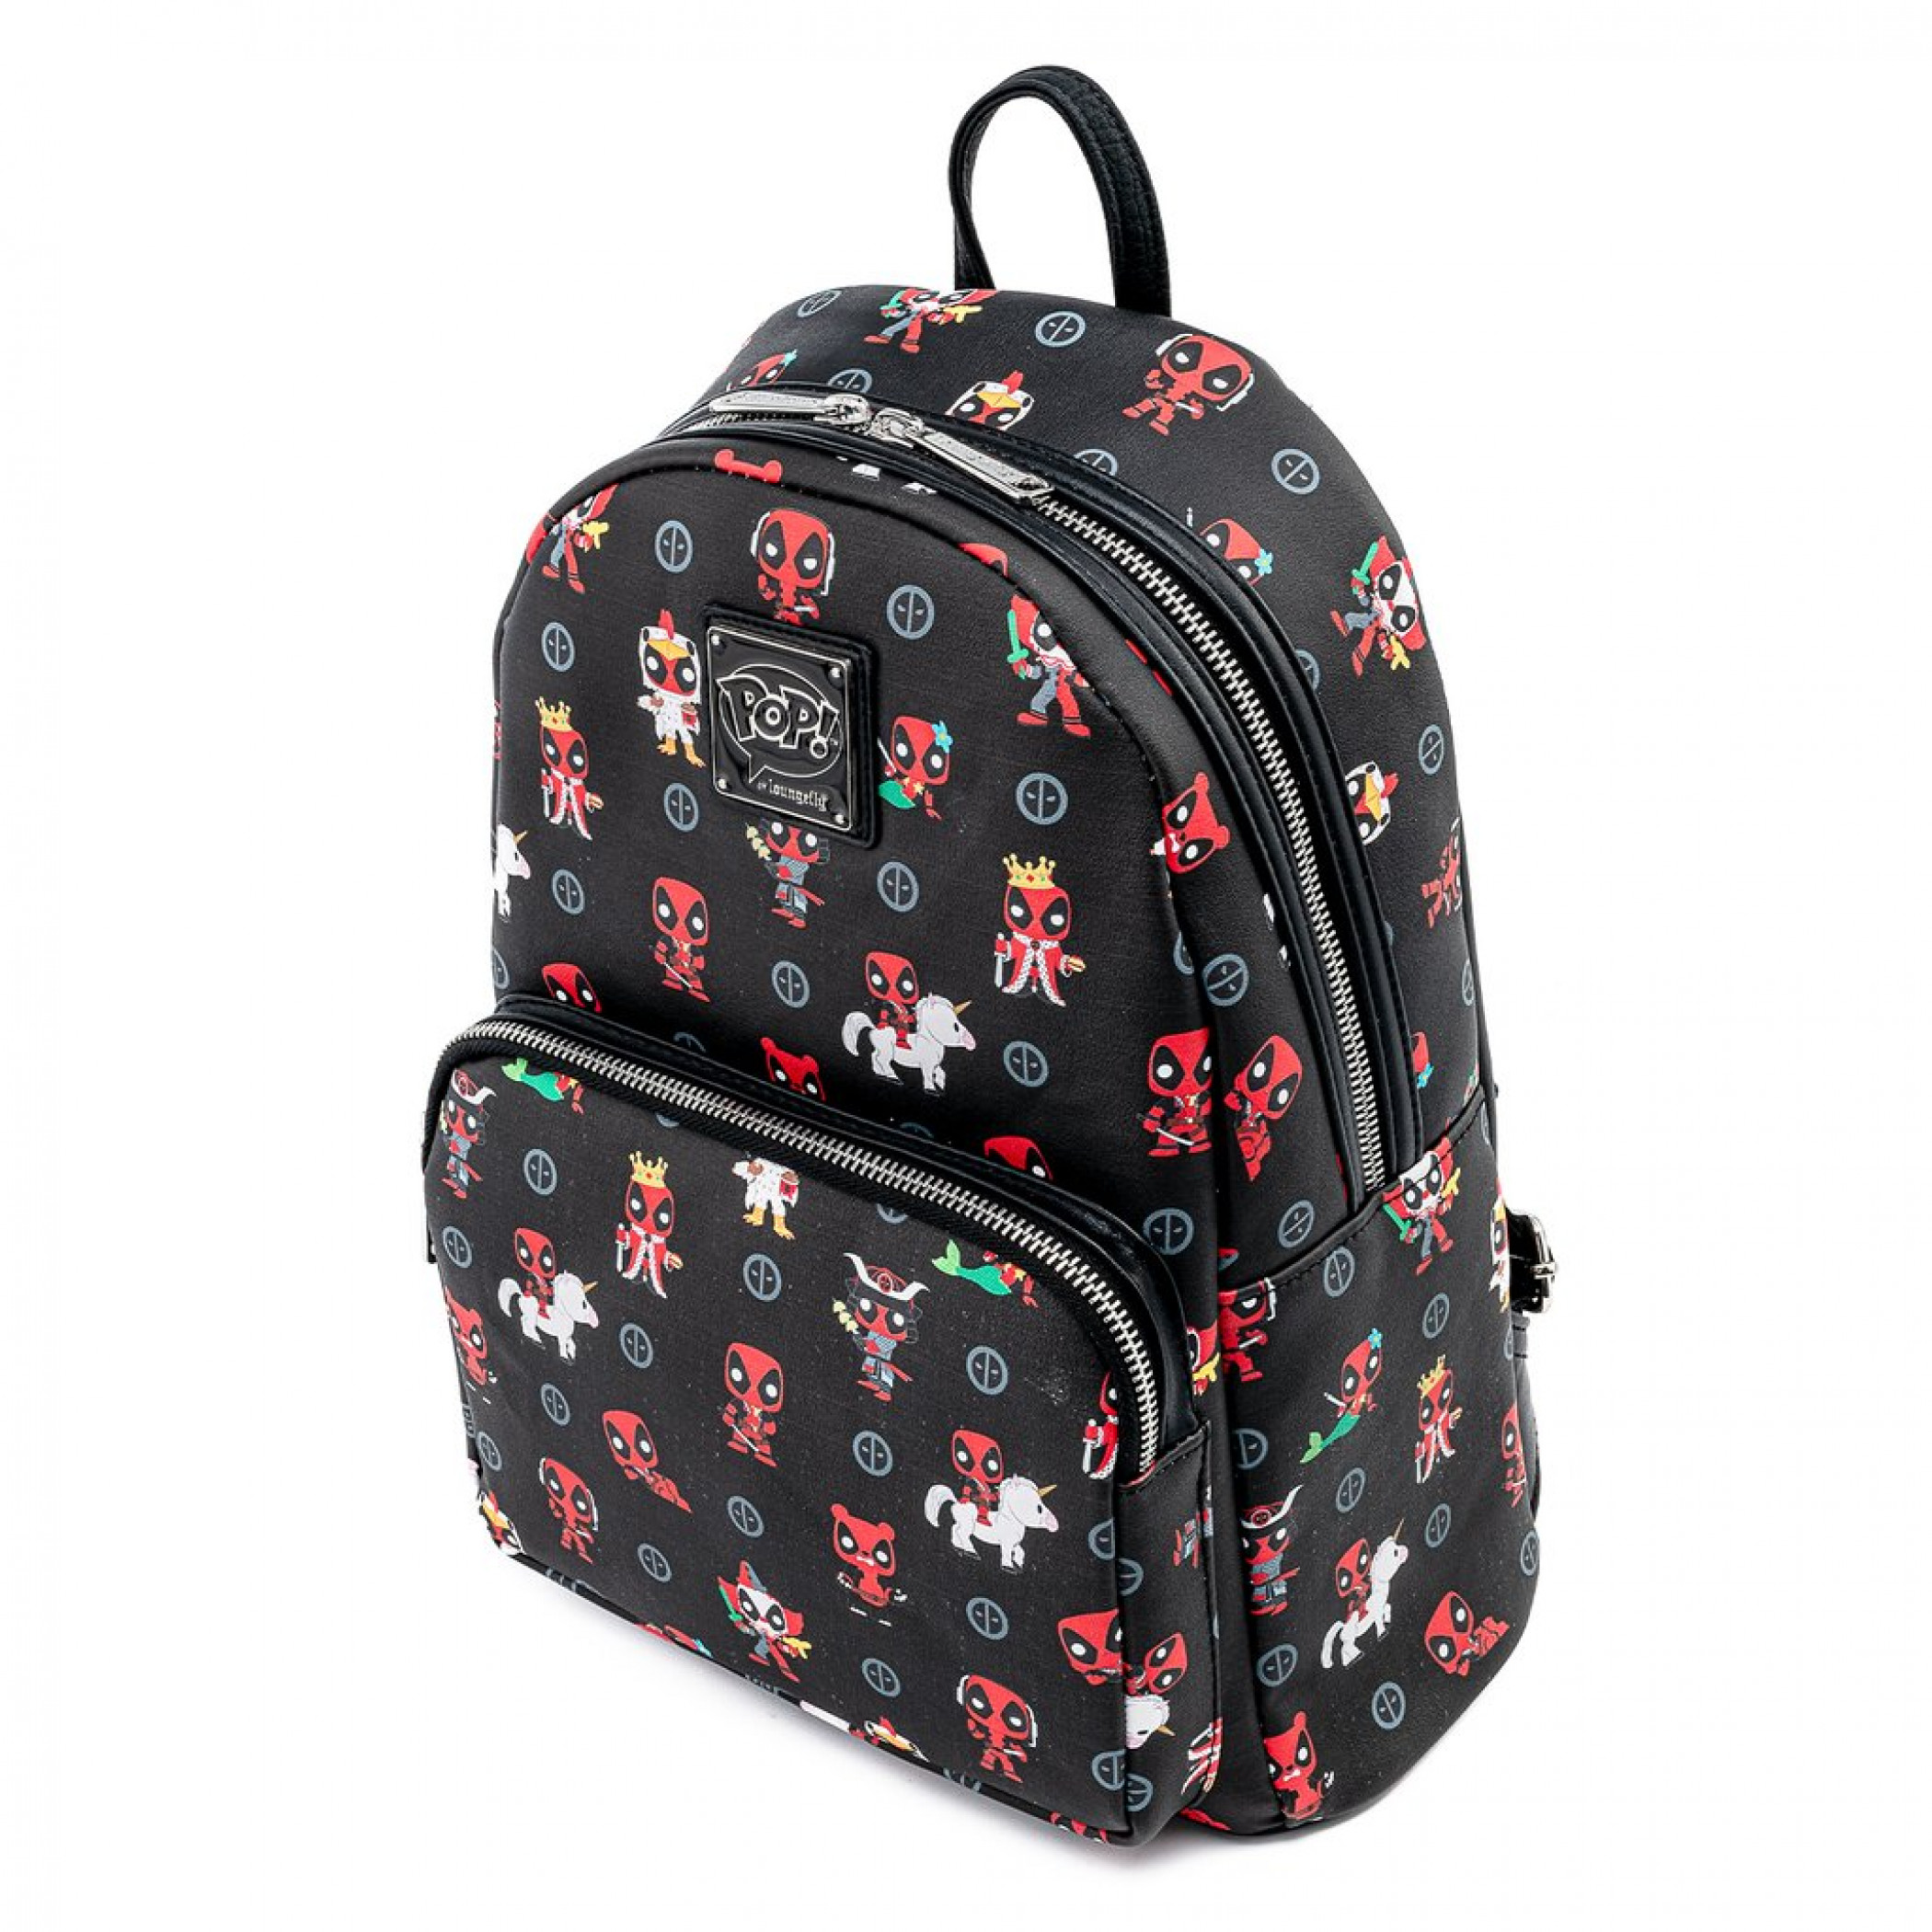 Marvel Deadpool All Over Print Mini Backpack by Loungefly